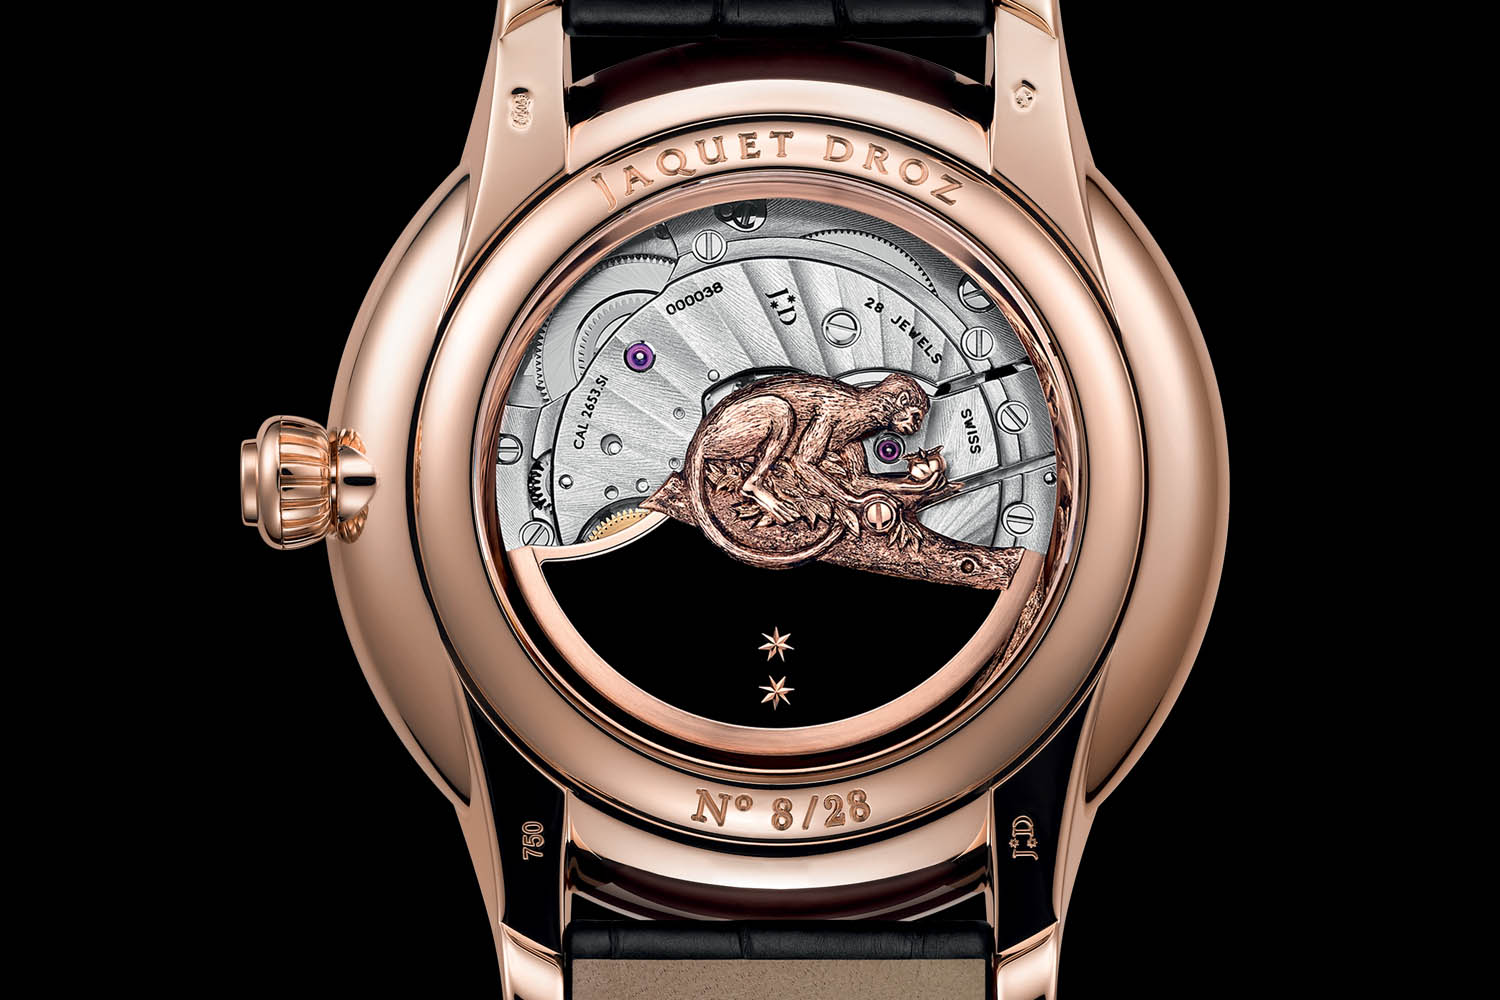 Jaquet Droz Petite Heure Minute Year Monkey